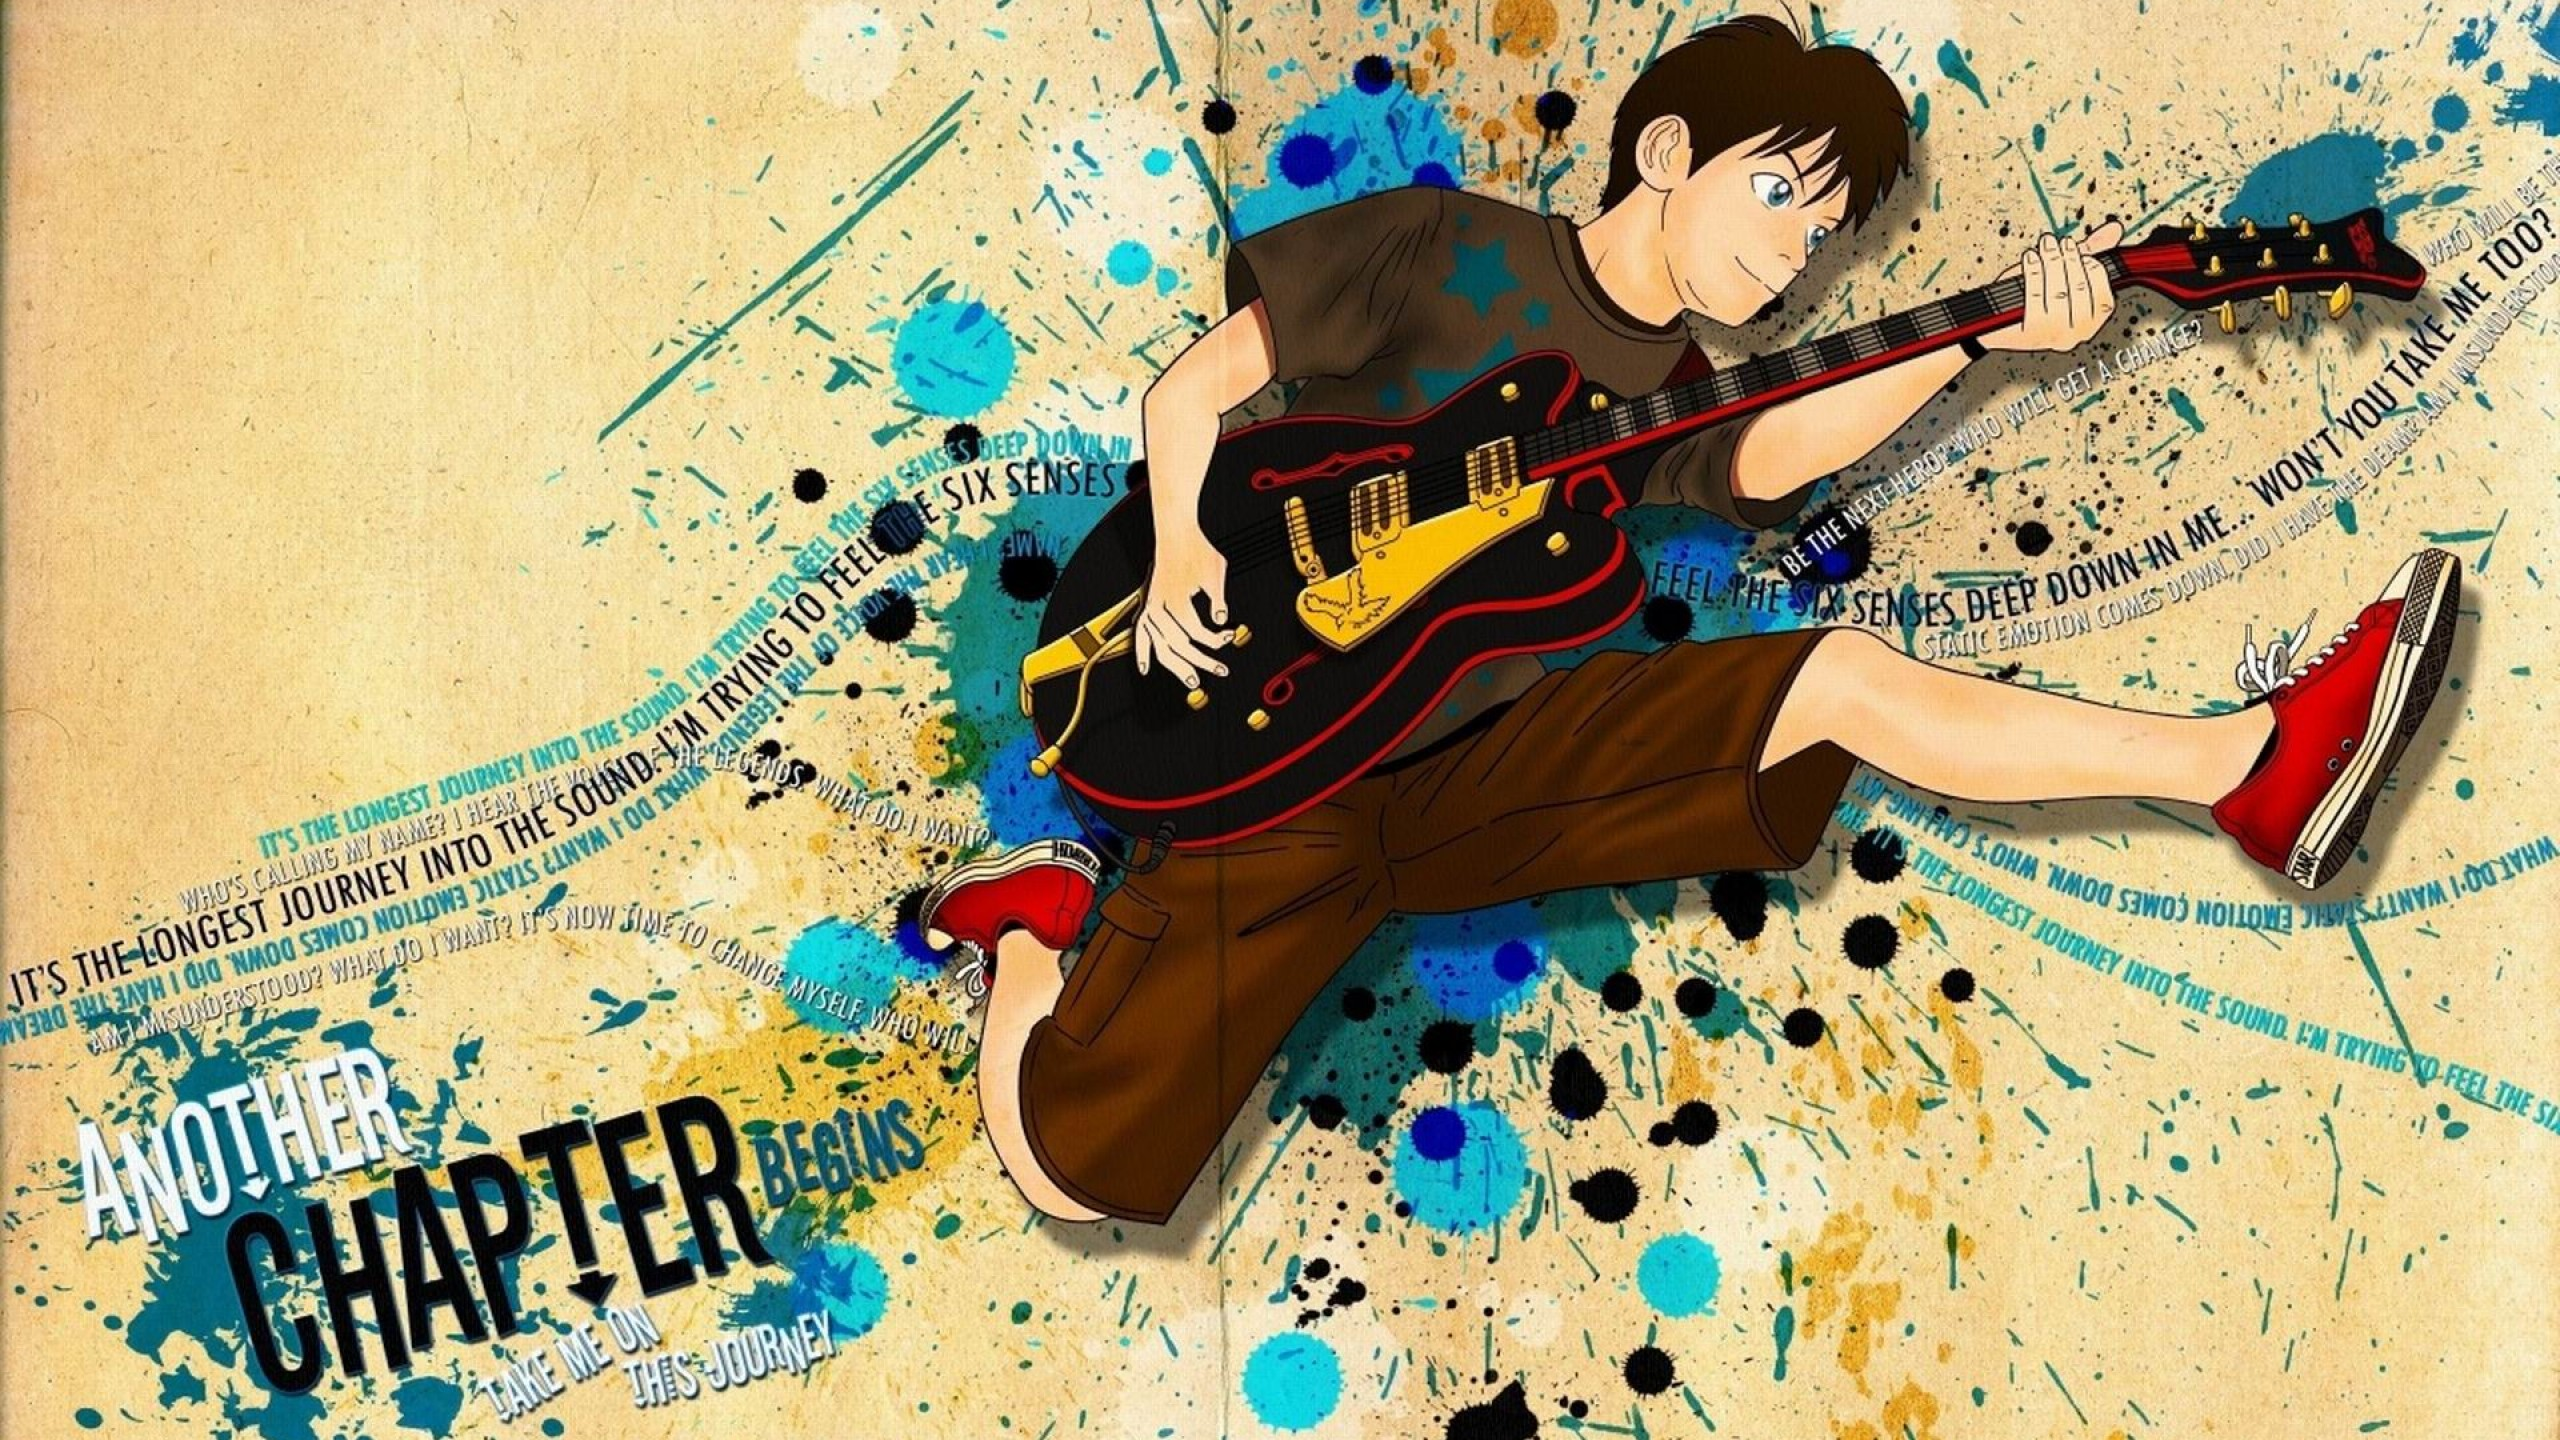 hd wallpapers of guitar boy impremedianet